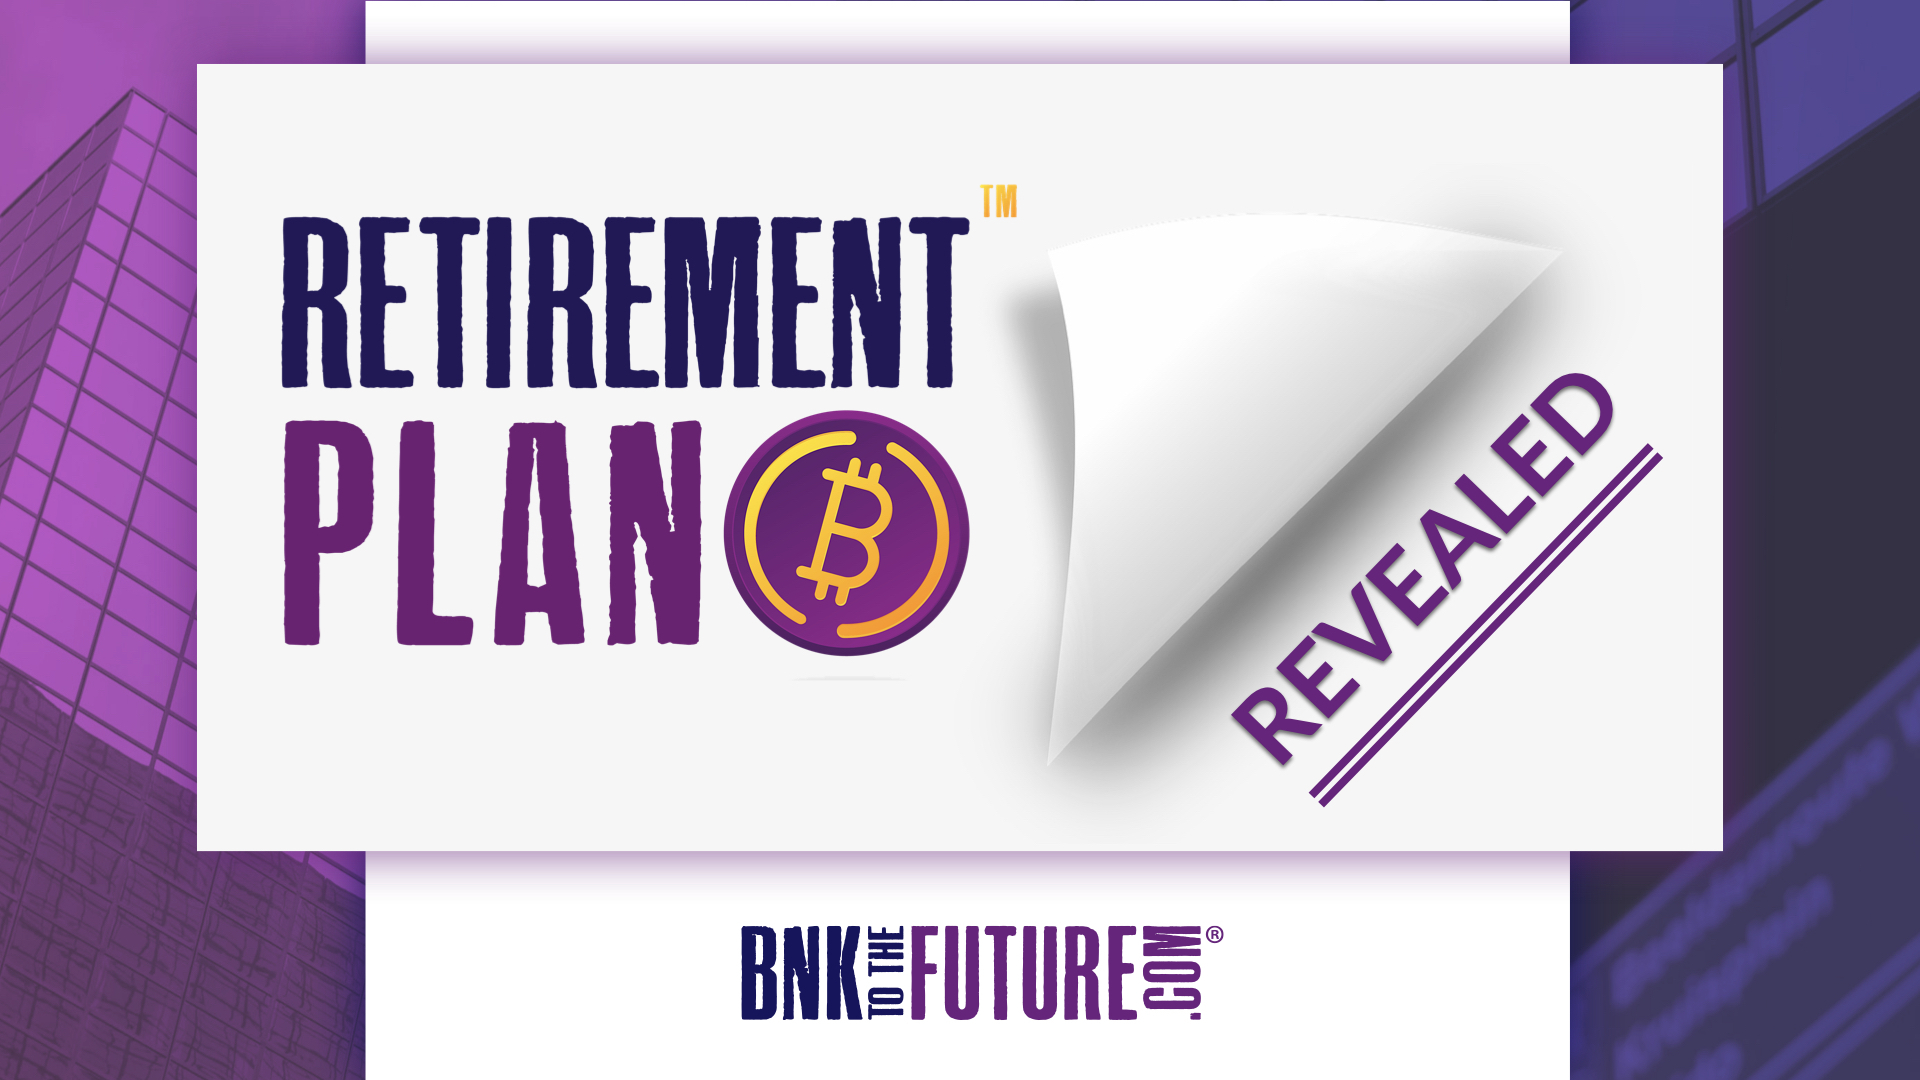 Your chance to win our 'Retirement Plan B' Online Coaching Program (priced at $2,997).